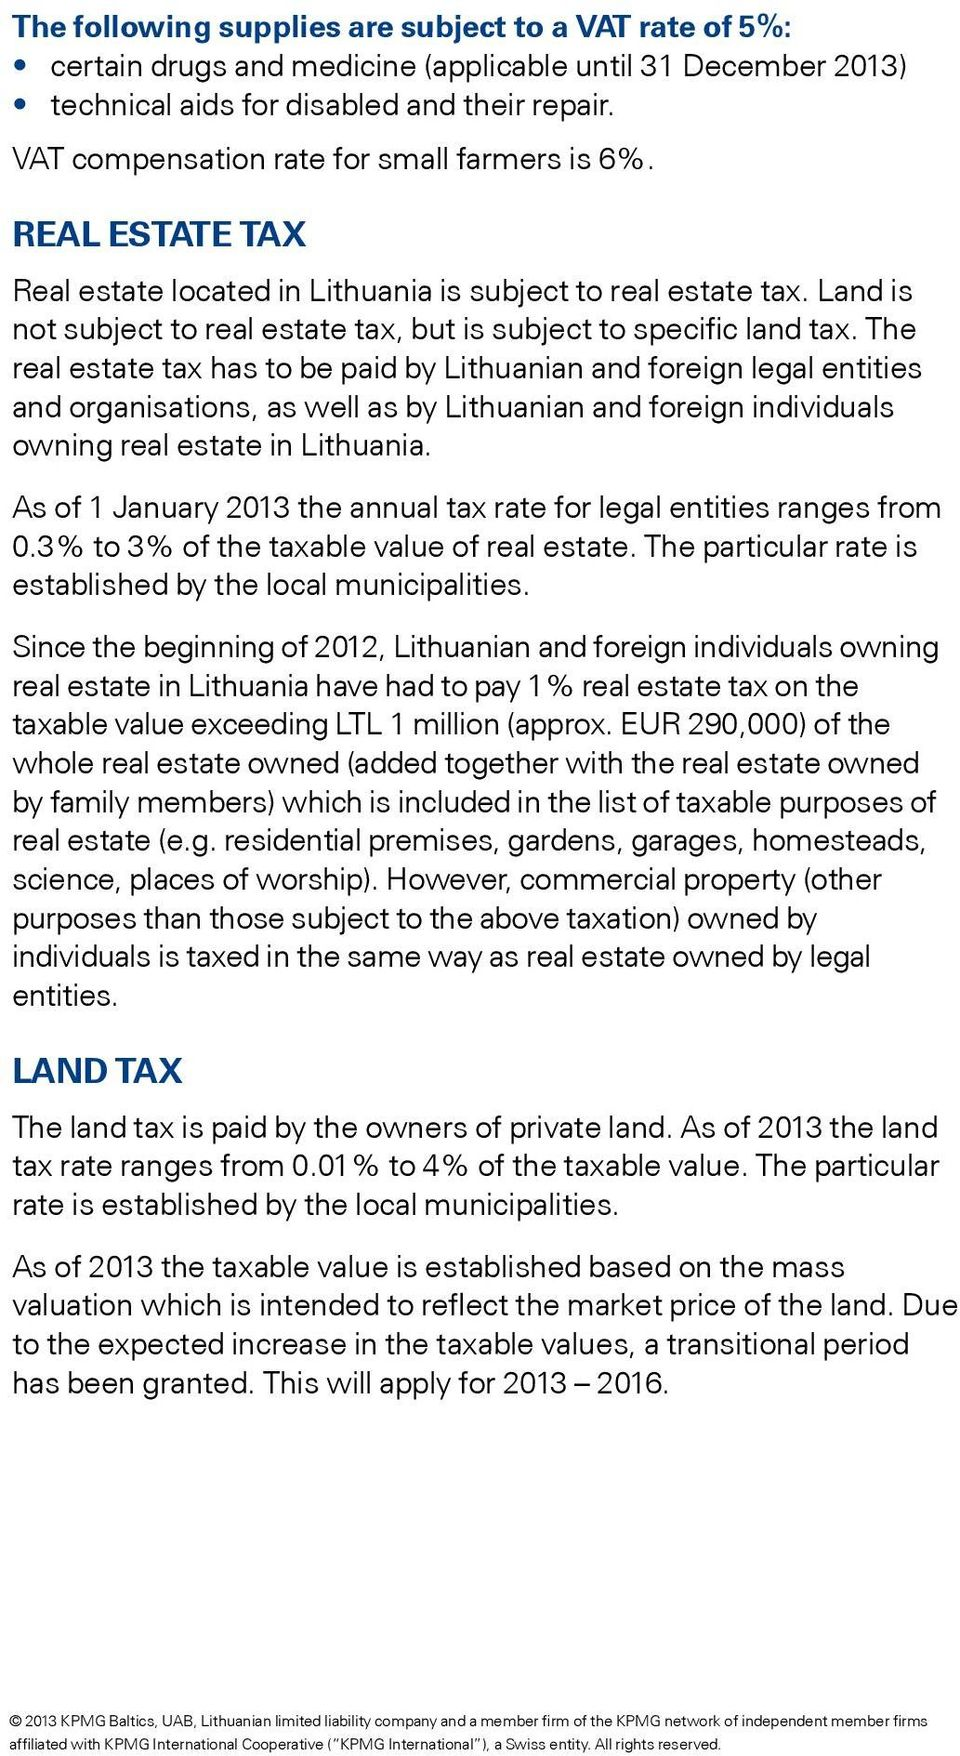 Land is not subject to real estate tax, but is subject to specific land tax.